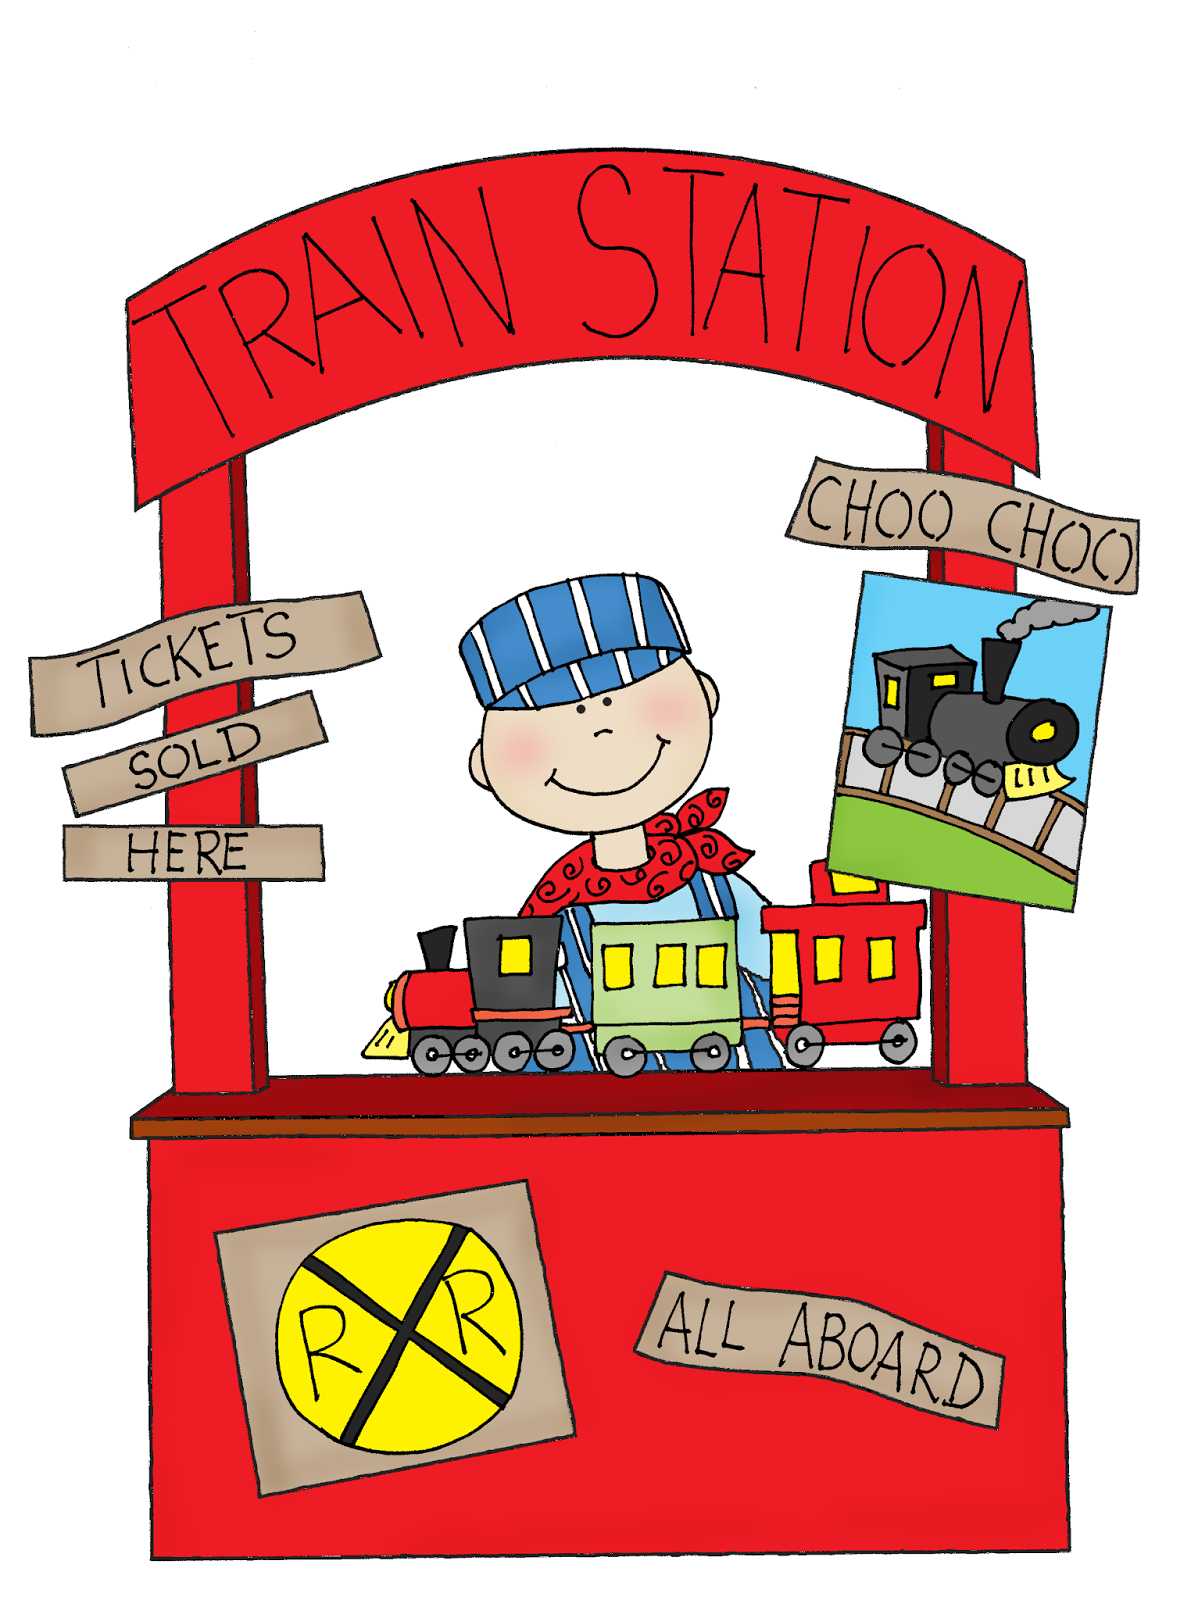 free dearie dolls digi stamps train station booth happy monday clipart minion happy monday clipart dog